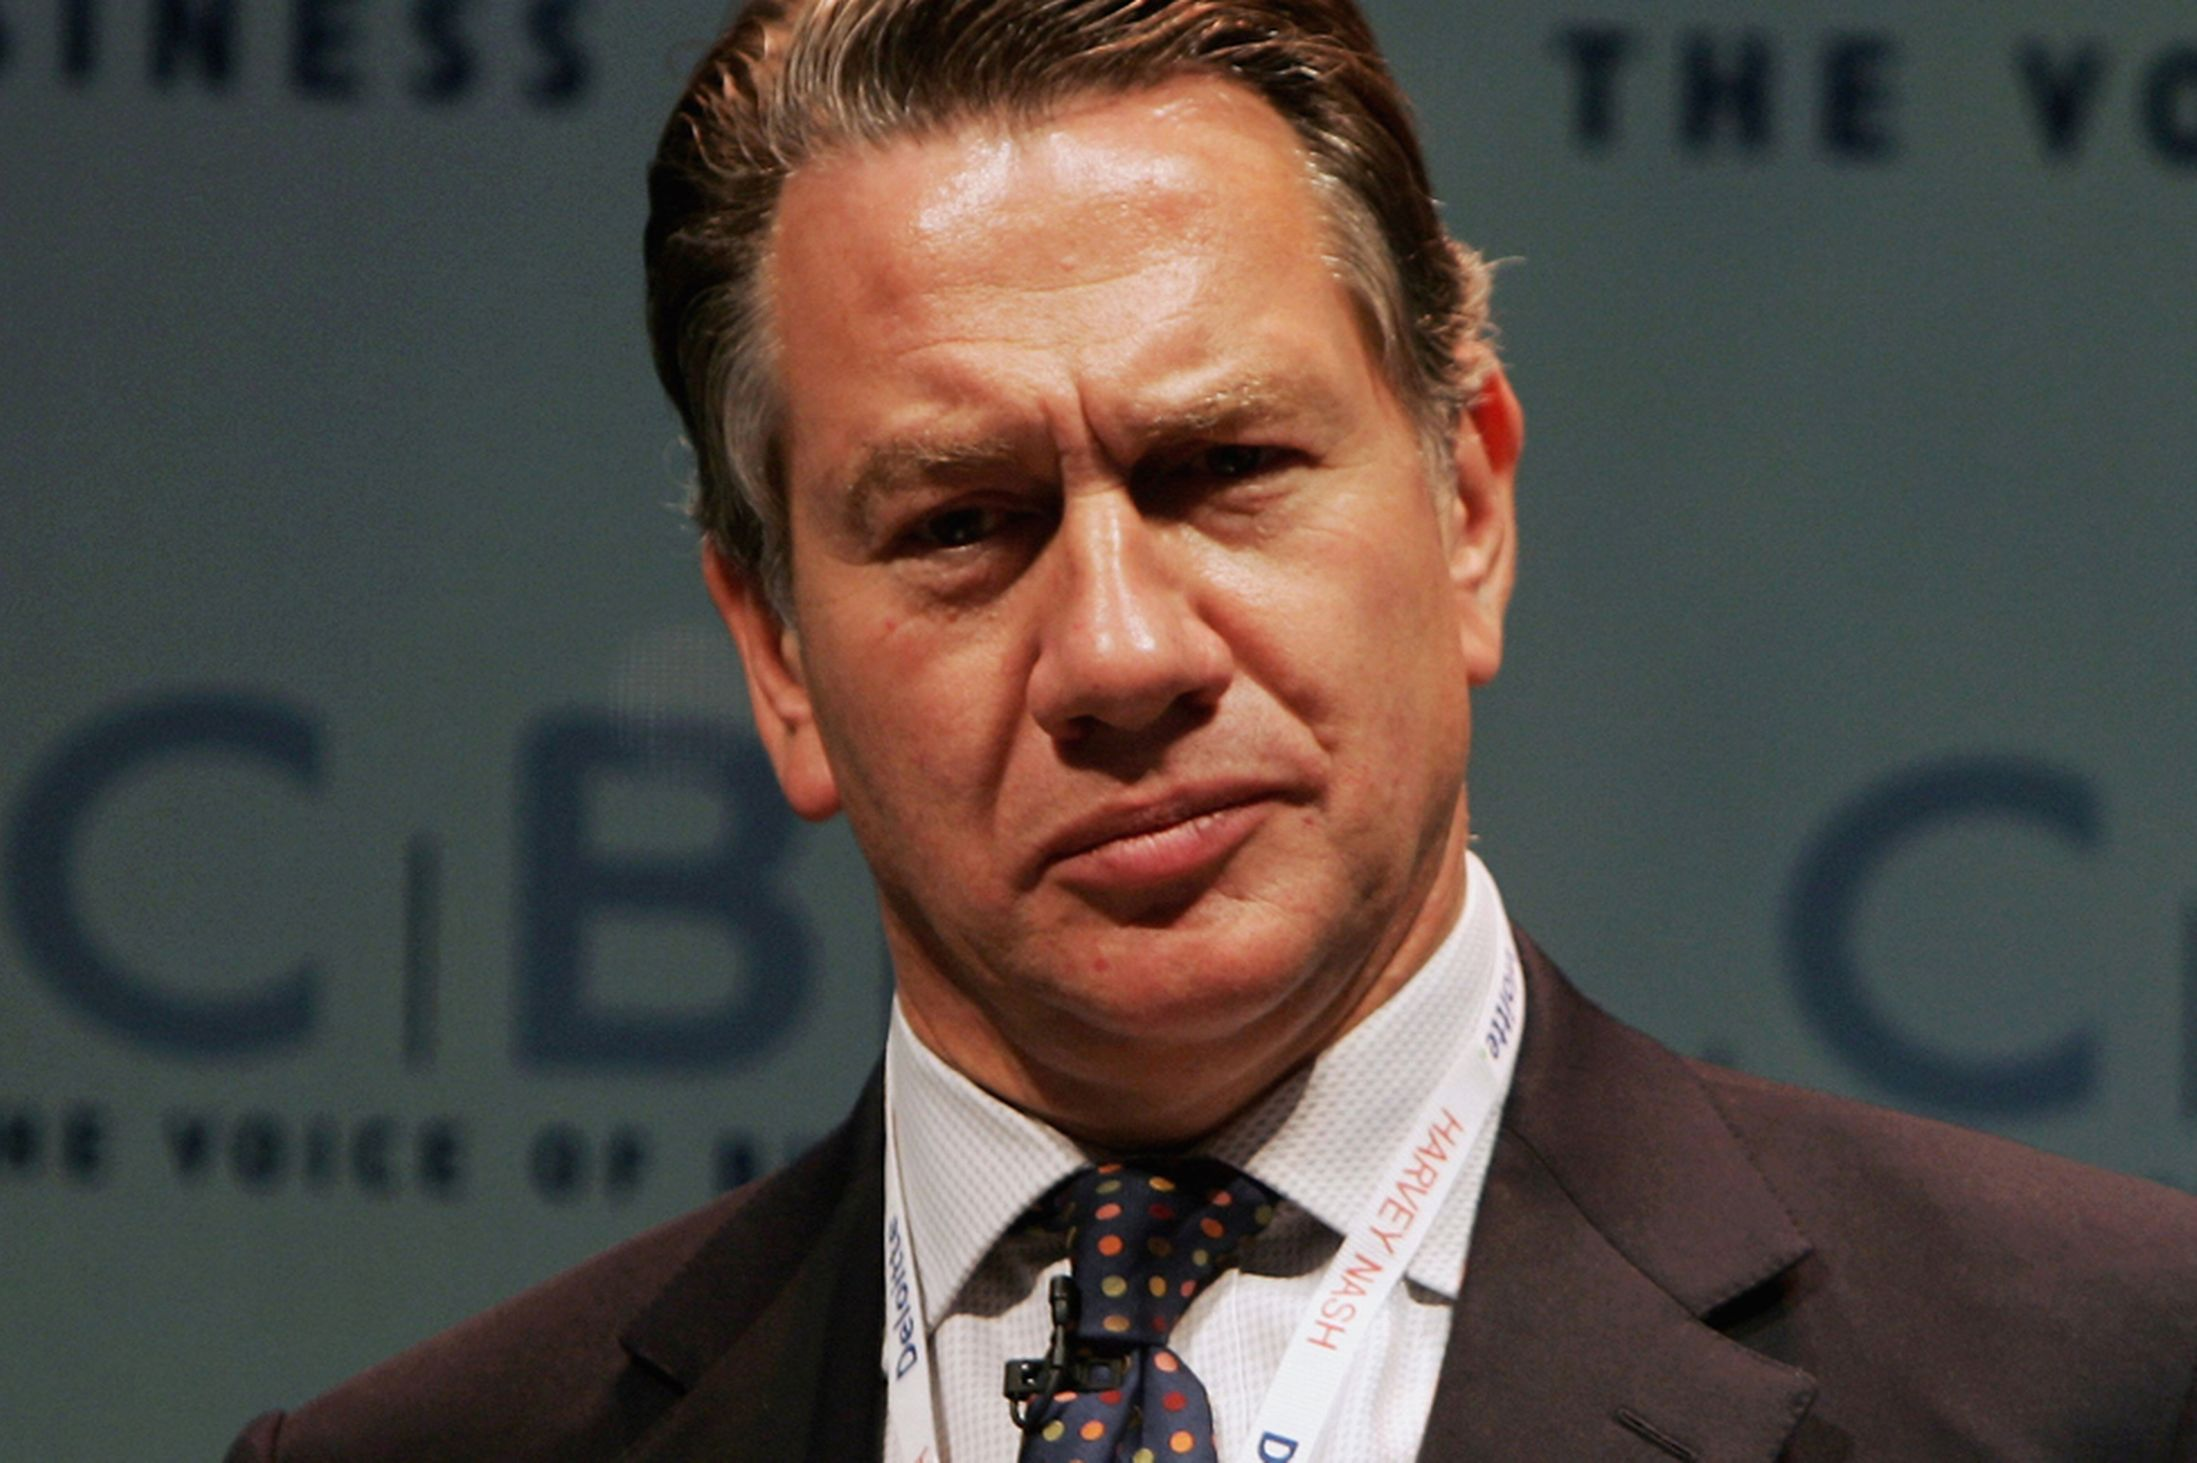 michael-portillo.jpg